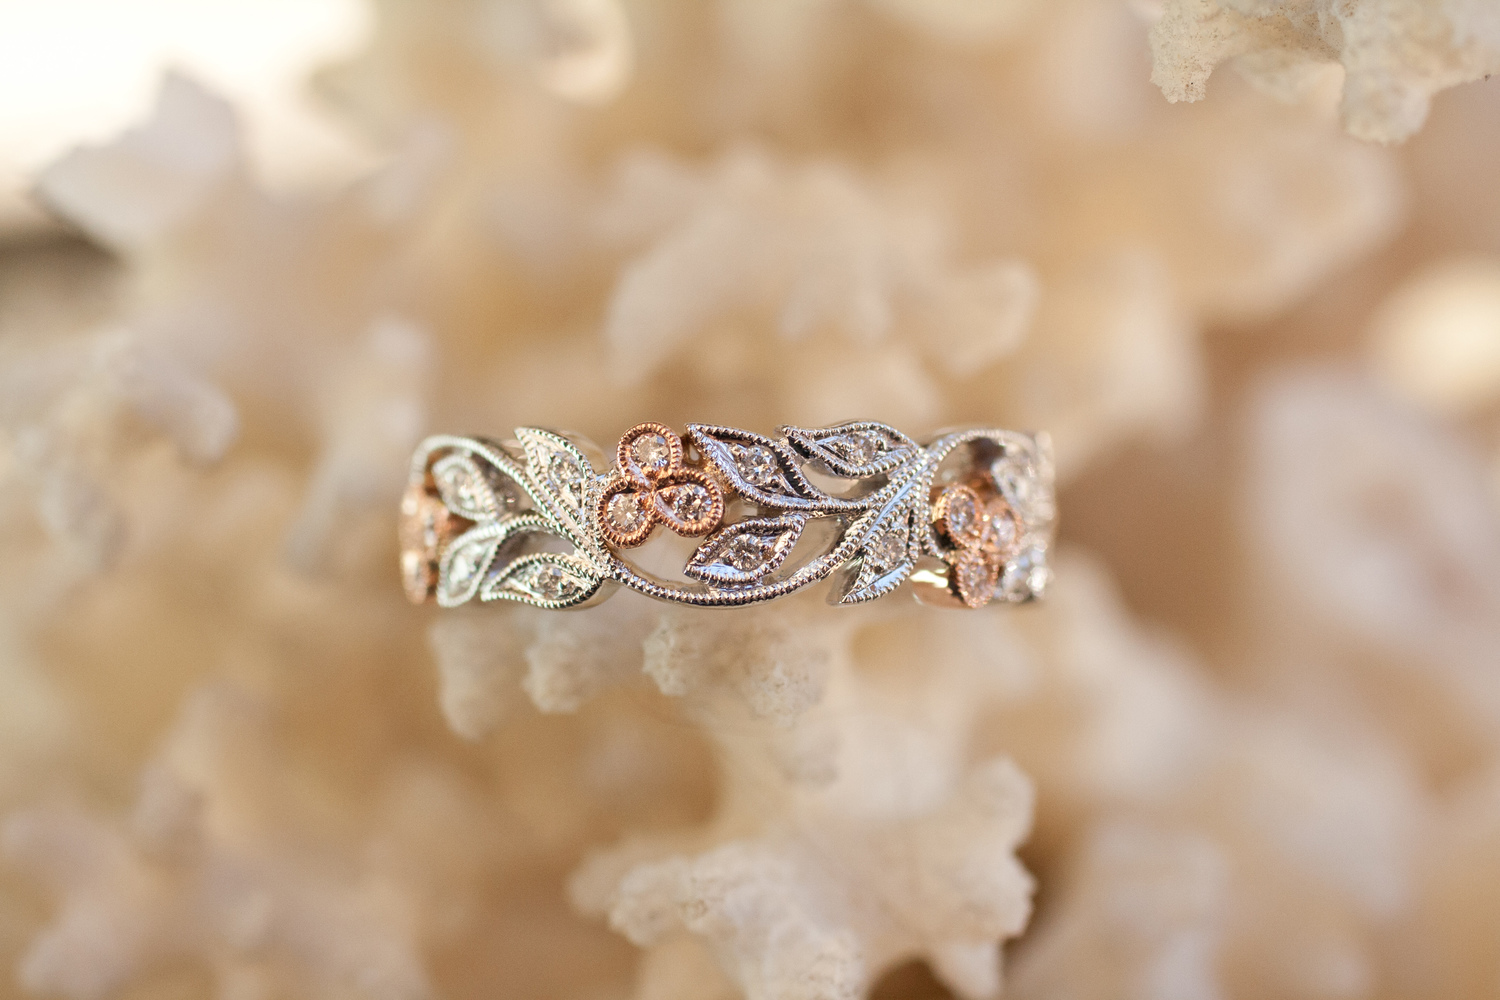 Danni+&+Carl+-+RG+WG+Filligree+w+Diamonds+Custom+Engagement+Ring_06.jpg